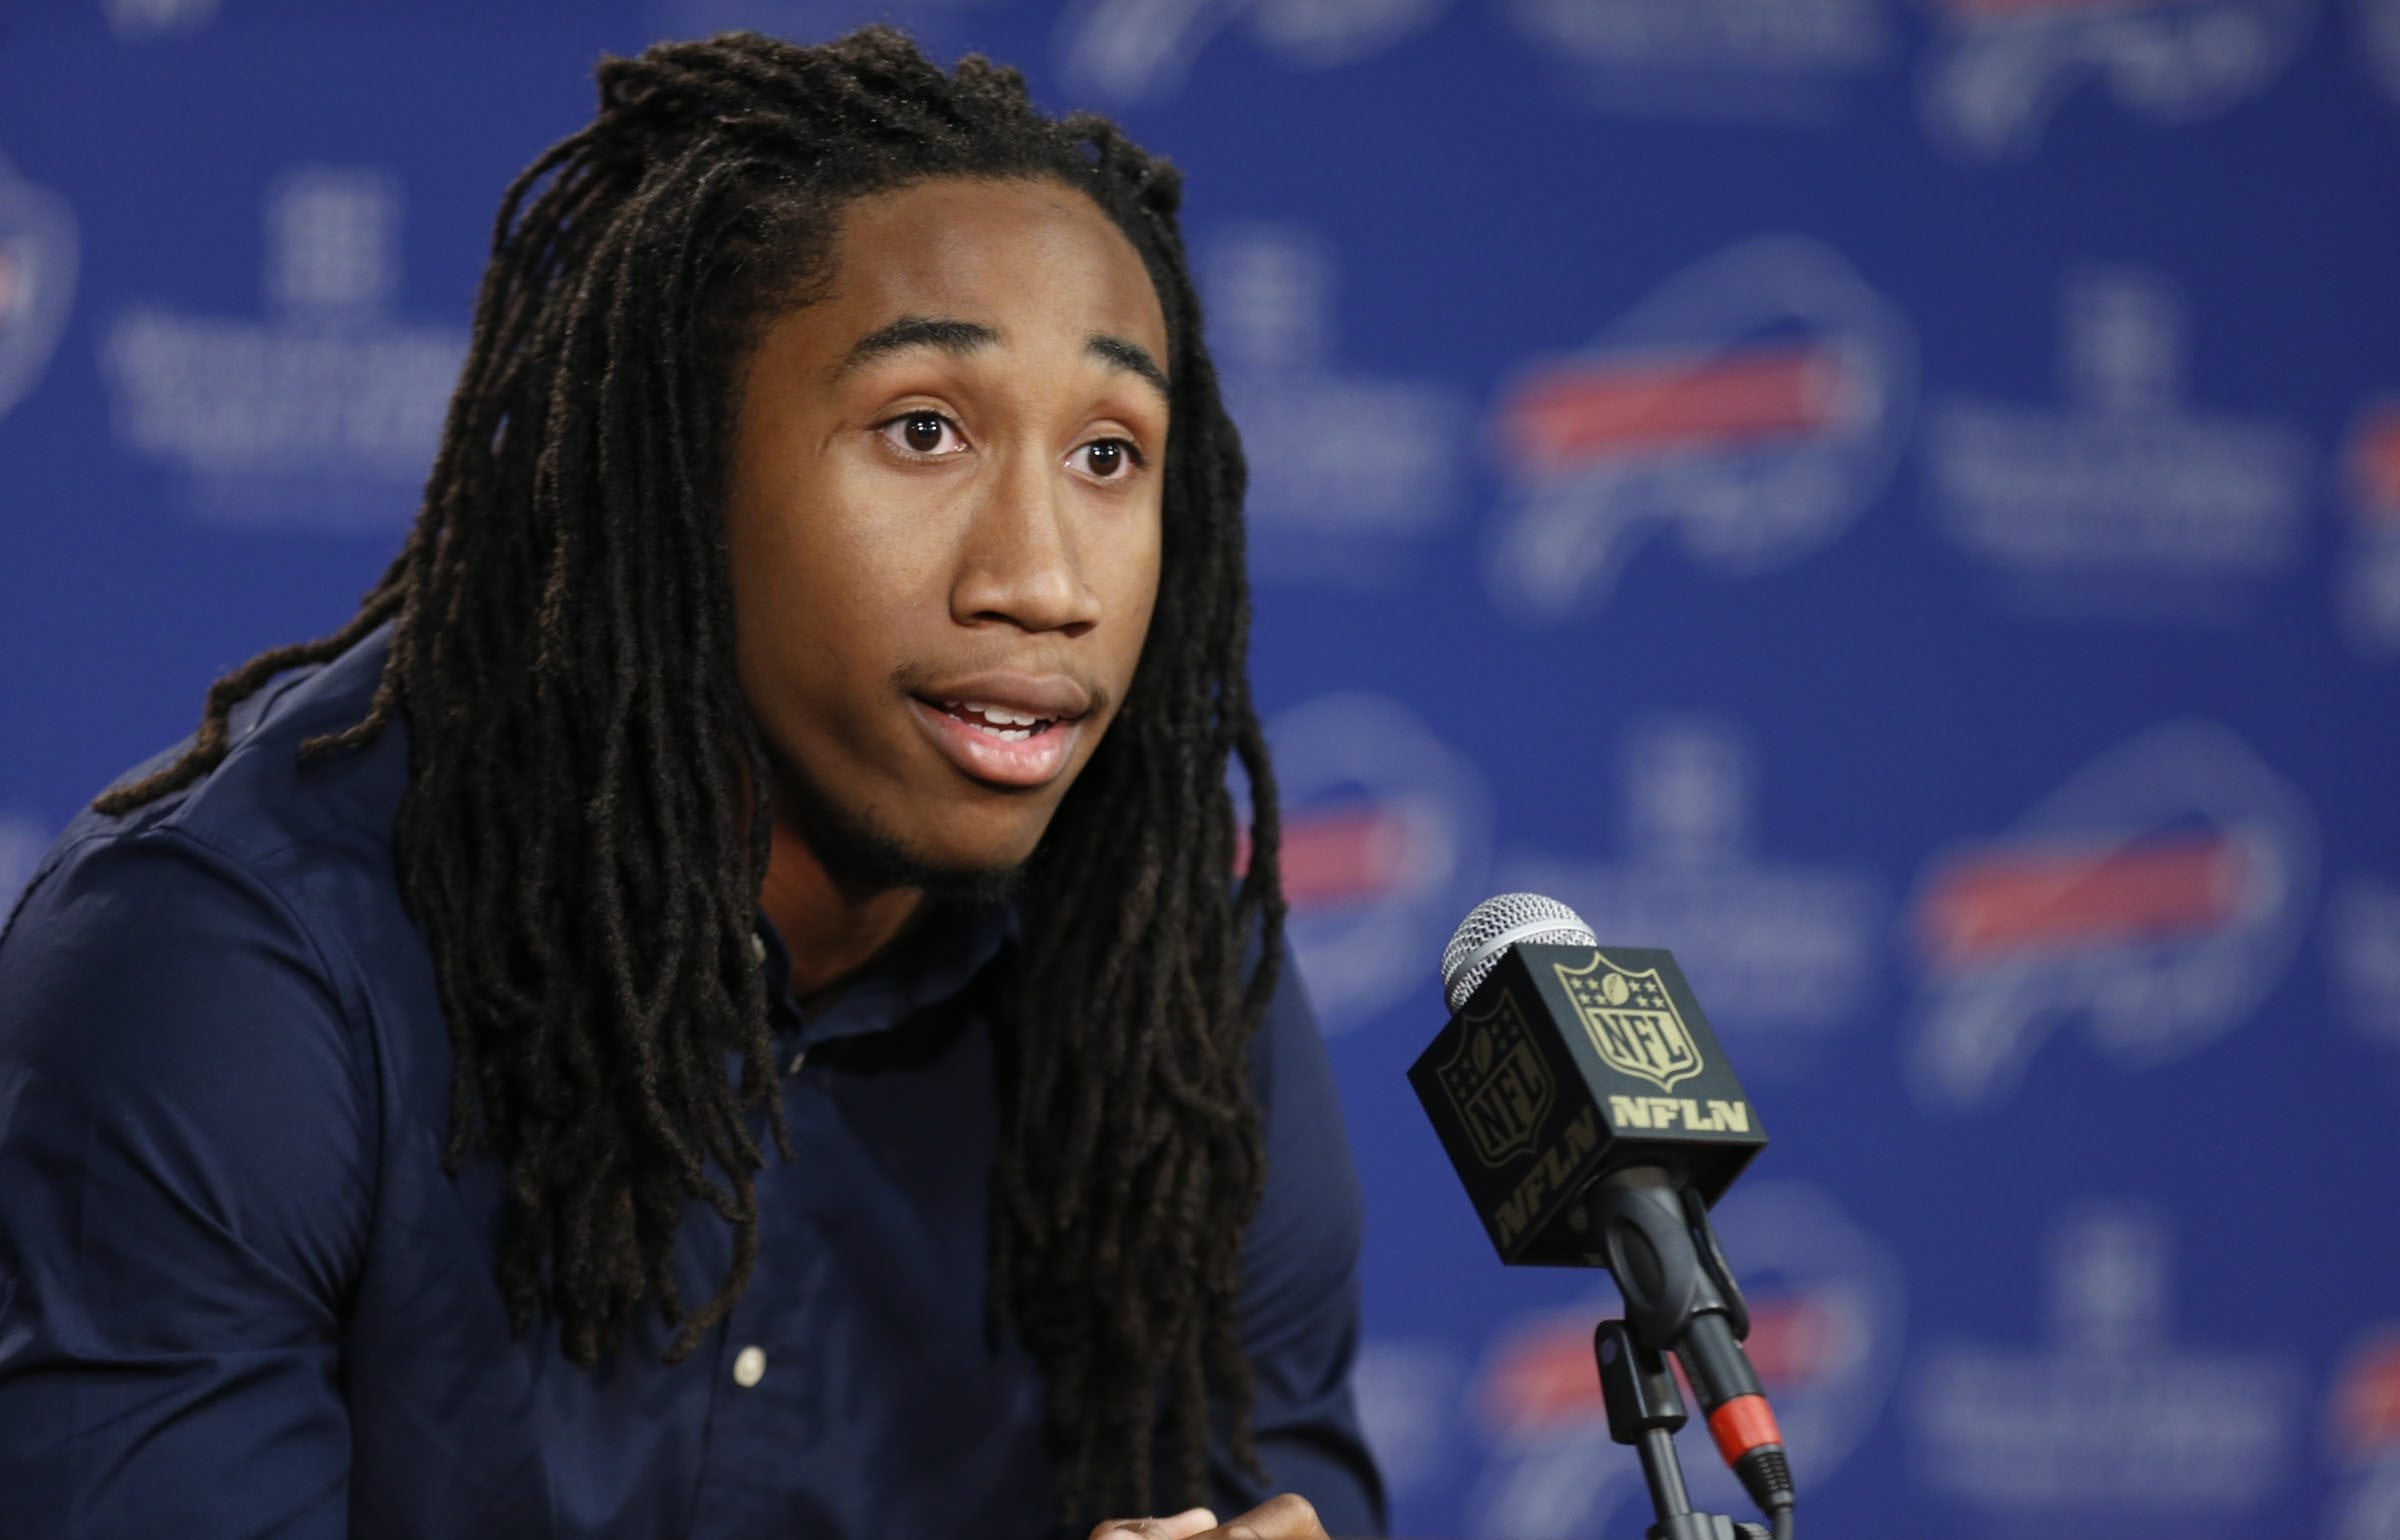 Ronald Darby,  the Buffalo Bills 2nd round pick from Flodira State is introduced to the media on Saturday, May 2, 2015.(Harry Scull Jr./Buffalo News)